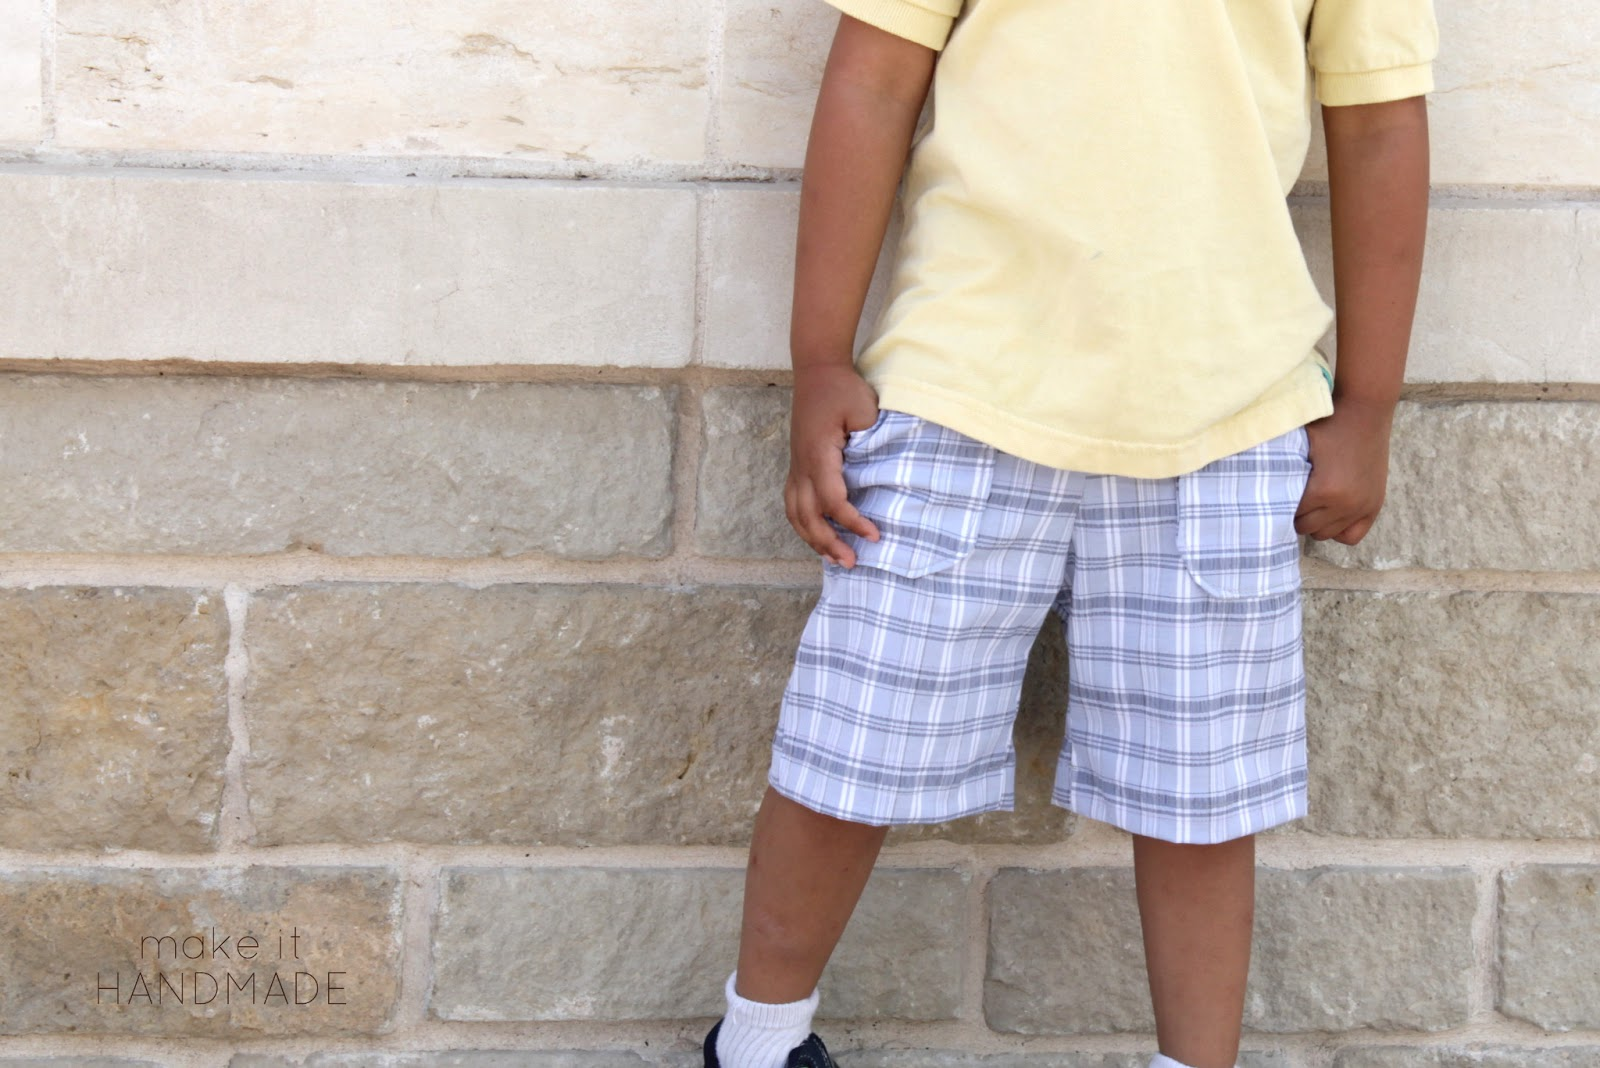 KID Shorts Pattern Review and Giveaway! Flat front pocket shorts